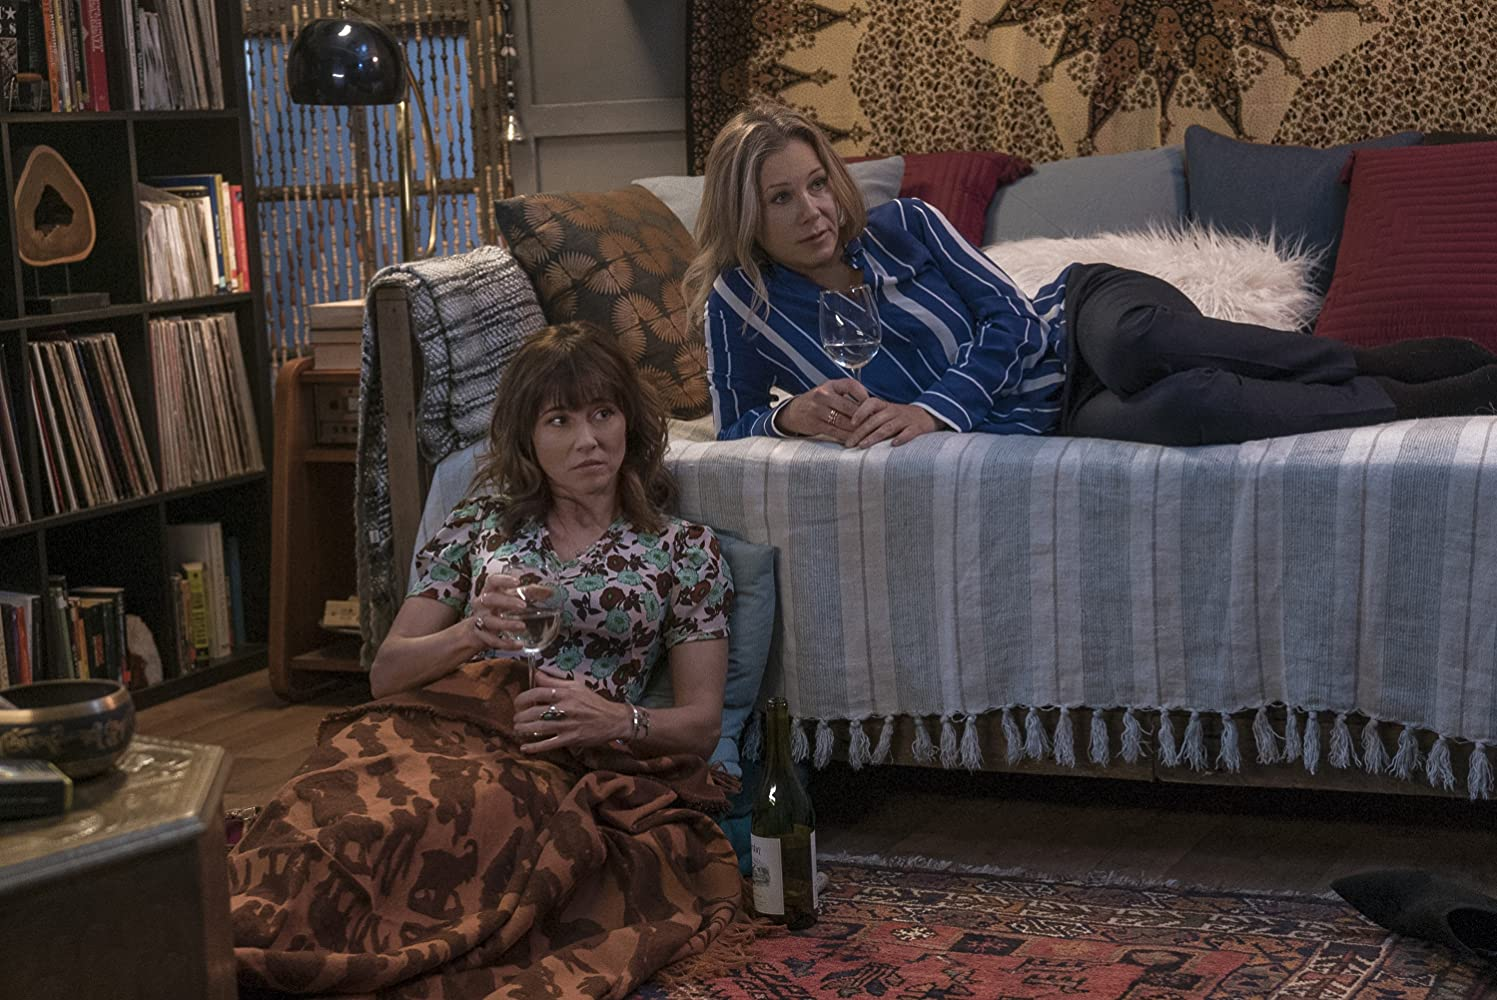 Christina Applegate and Linda Cardellini in Dead to Me (2019)